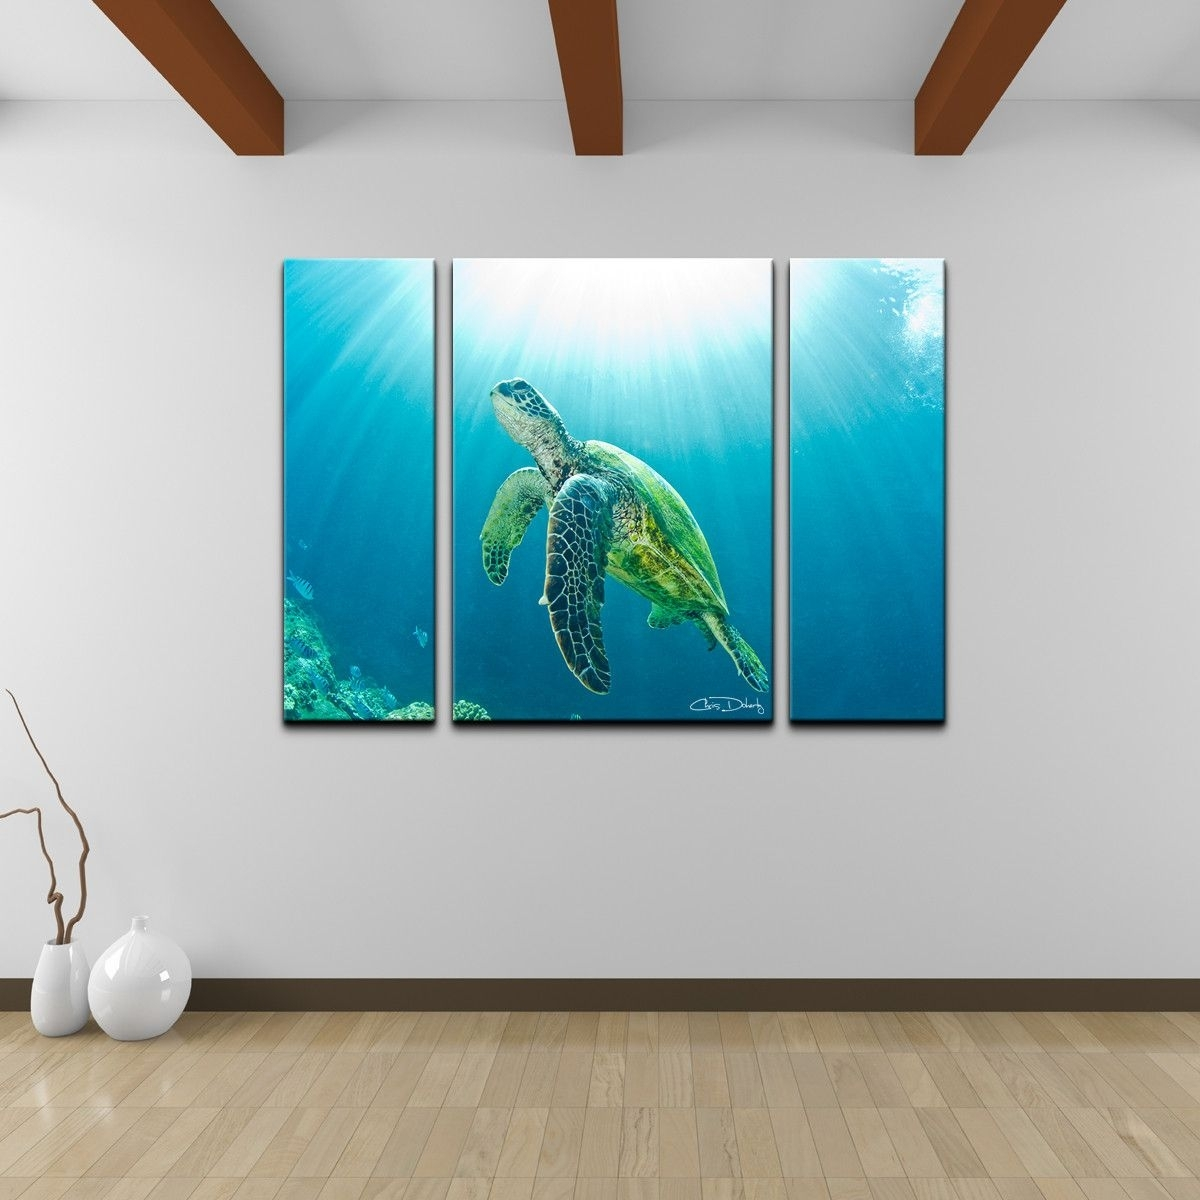 Christopher Doherty 'sea Turtle' Canvas Wall Art (3 Piece) | Turtle Within 2018 Sea Turtle Canvas Wall Art (Gallery 20 of 20)